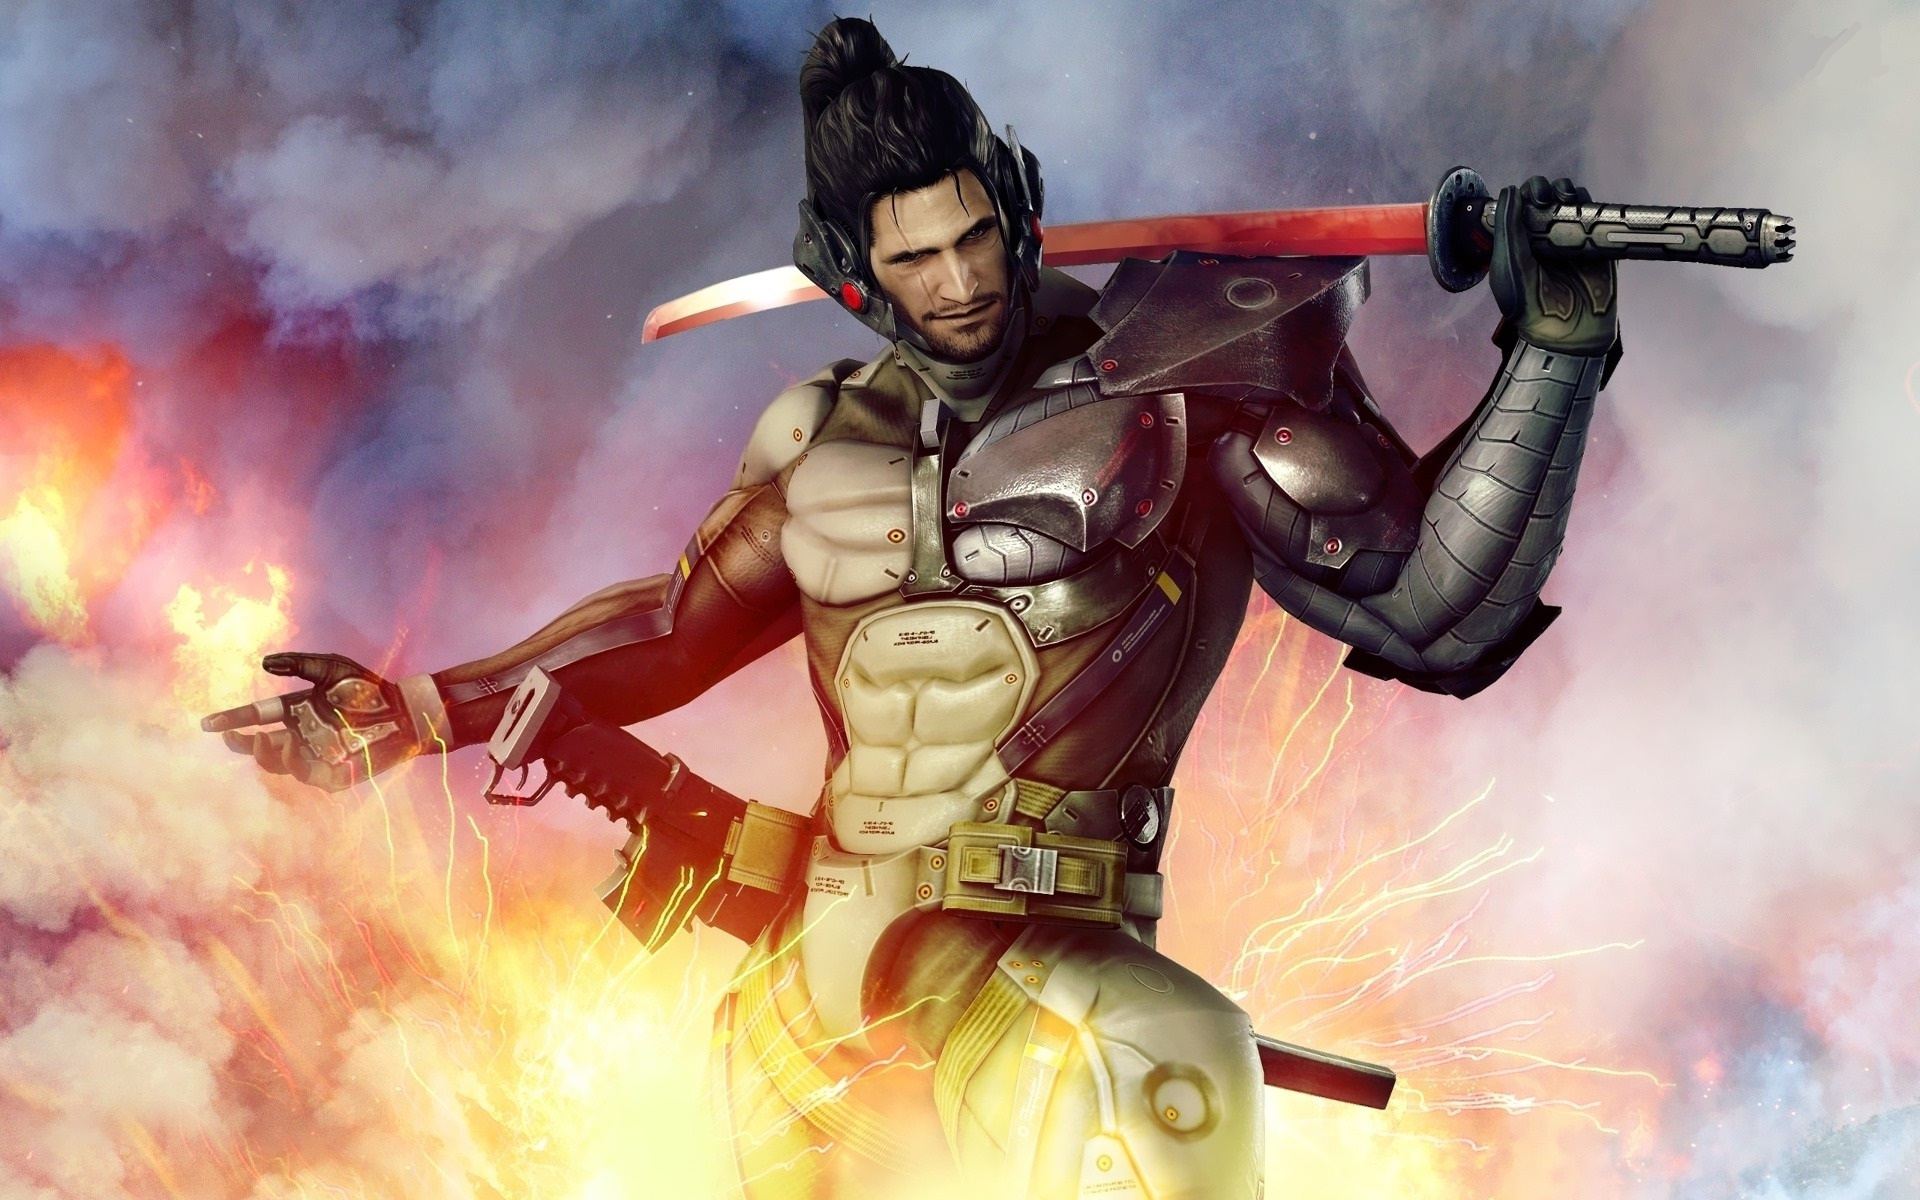 Jetstream Sam Metal Gear Rising Revengeance Know Your Meme